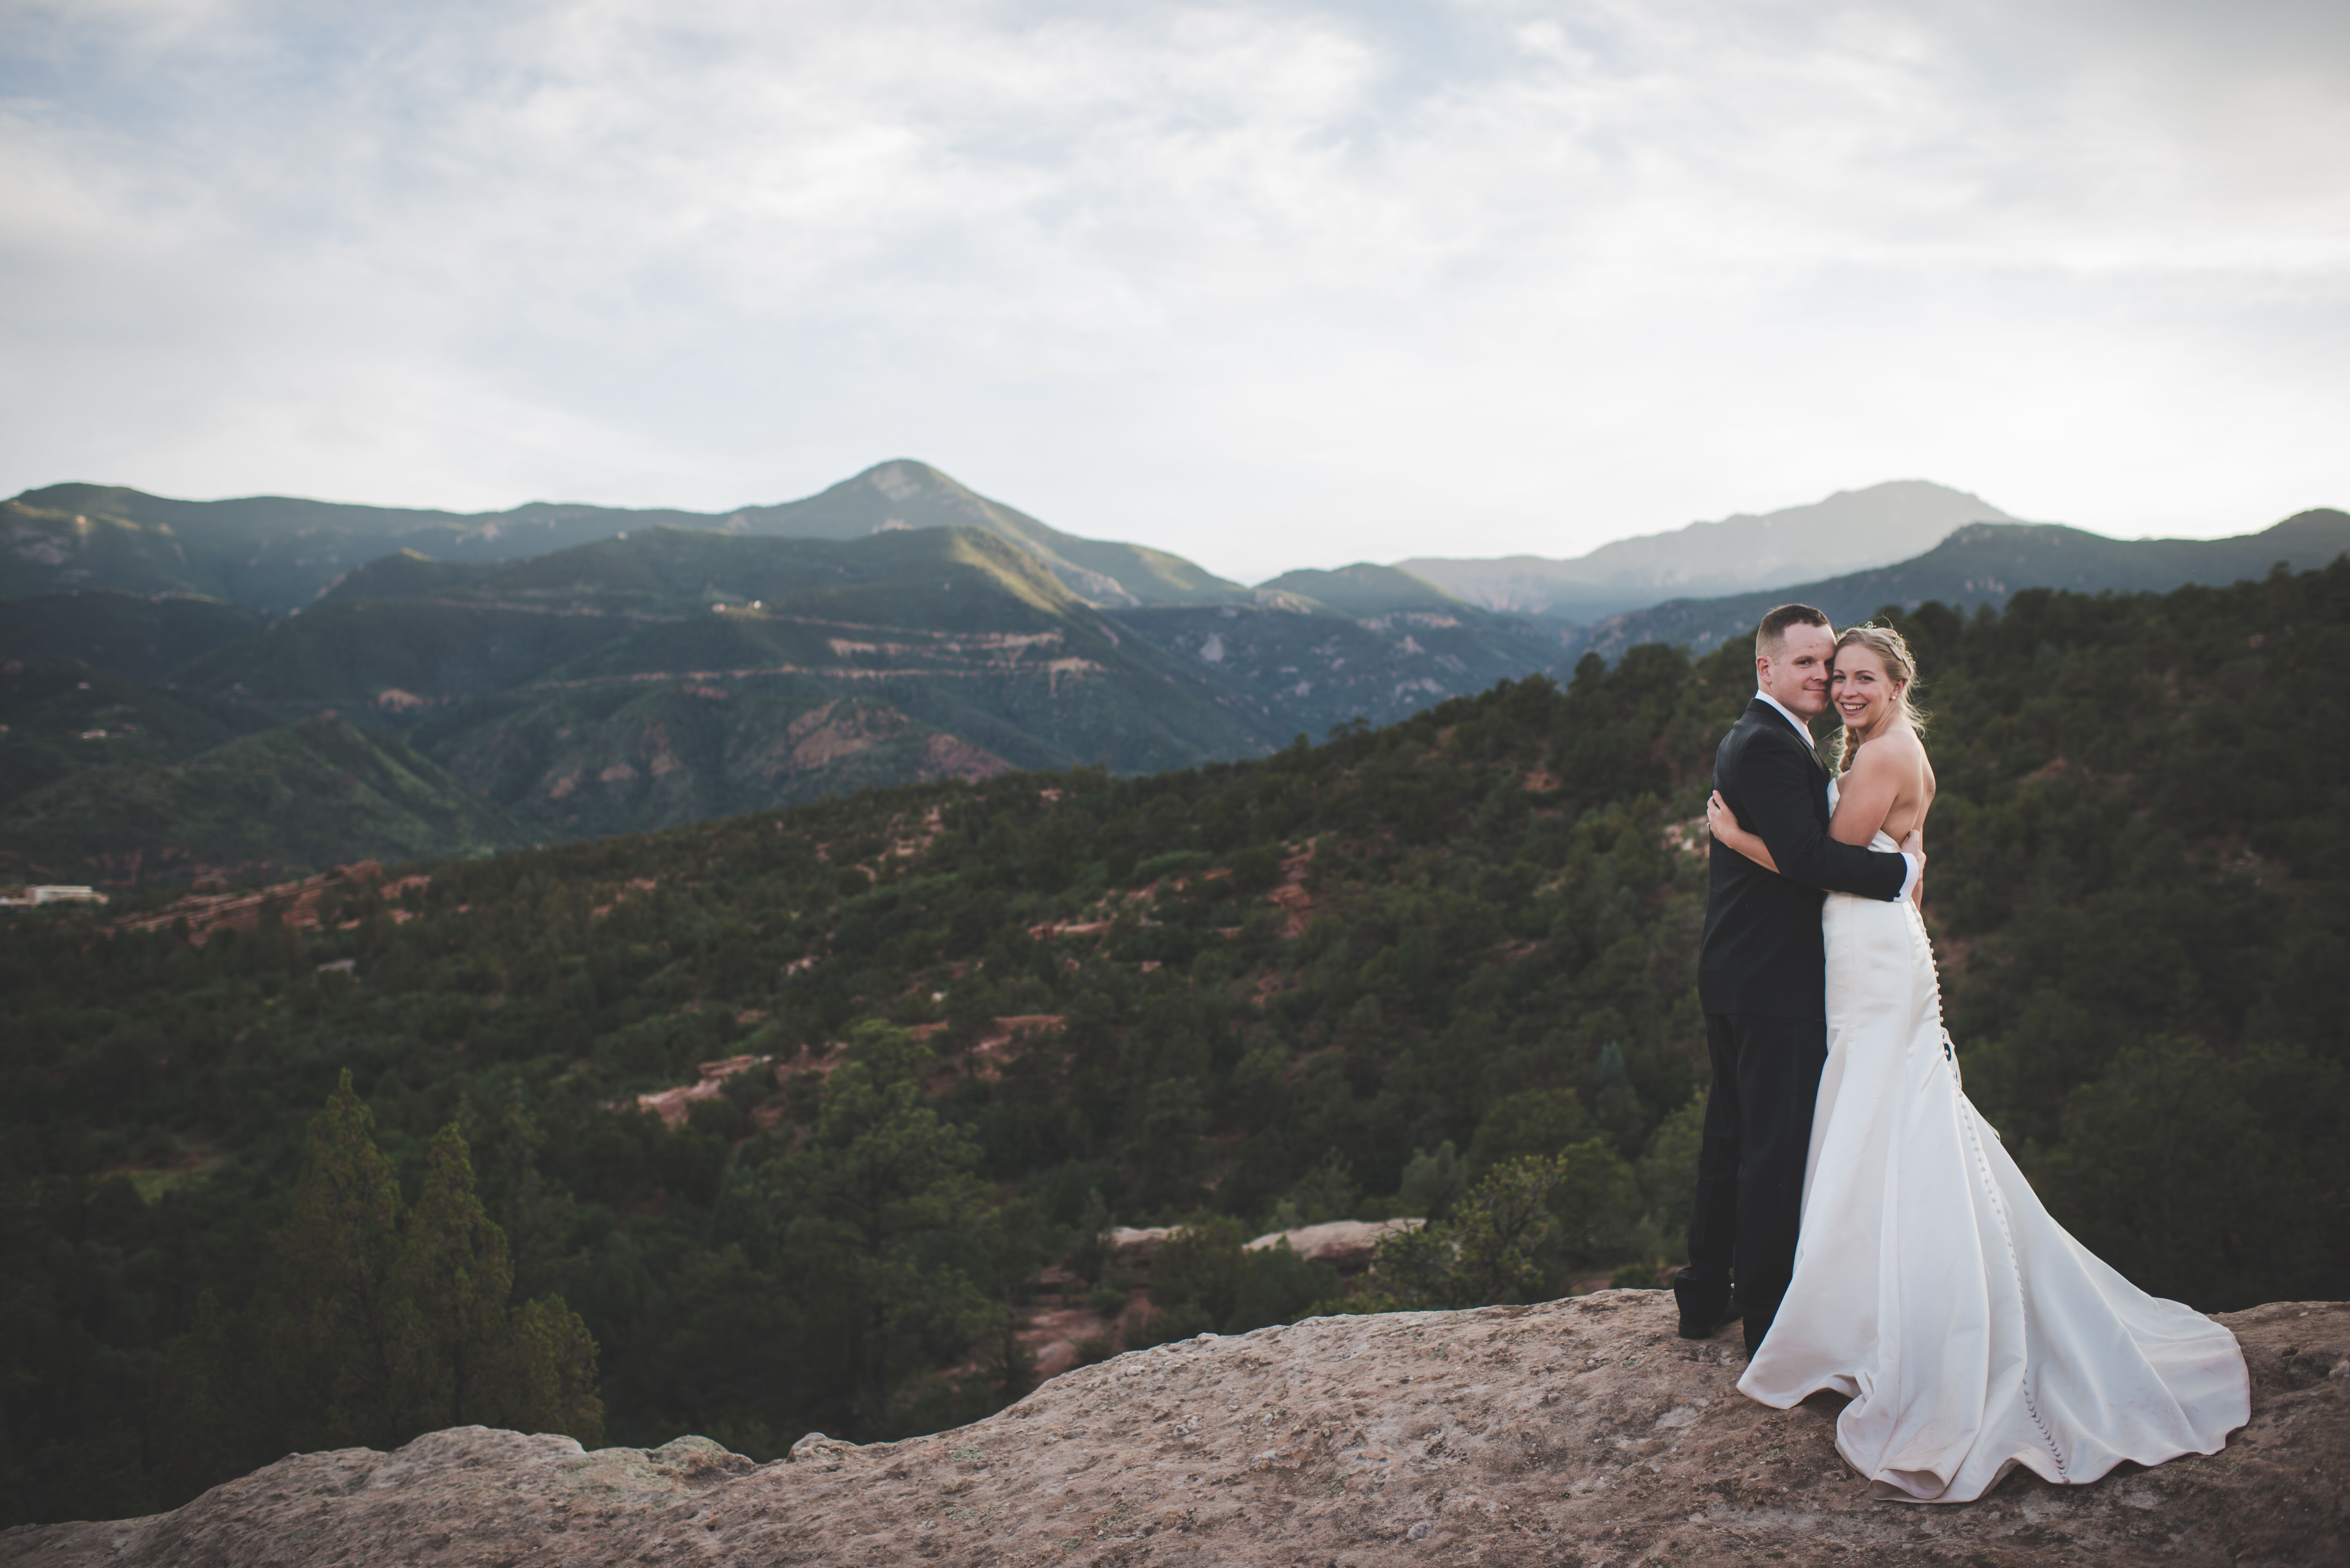 An Intimate Mountain Wedding At Garden Of The Gods Park In Colorado Springs Colorado